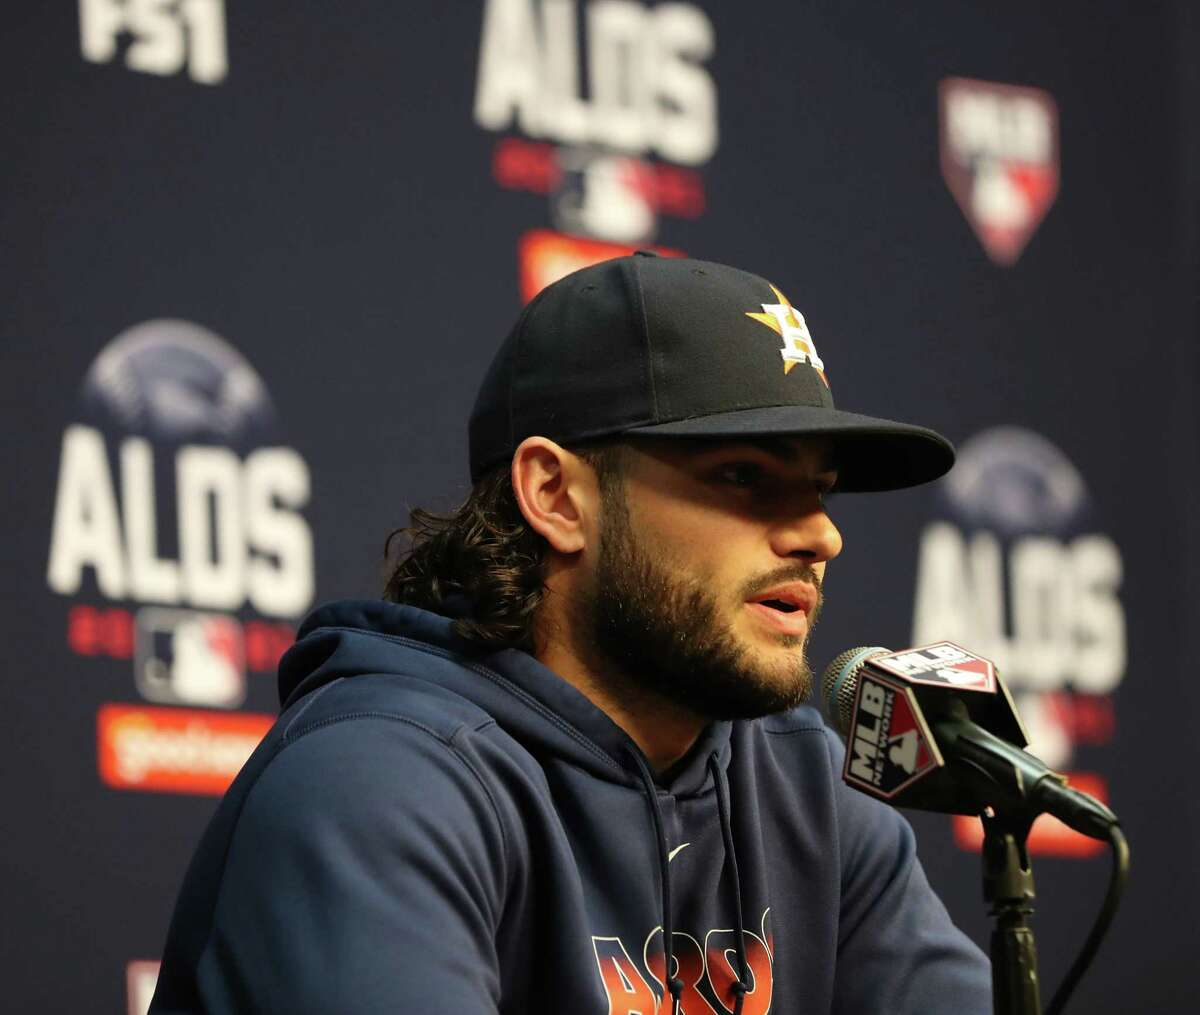 Houston Astros pitcher Lance McCullers Jr. speaks to the media before batting practice ahead of Game 1 of the American League Division Series playoffs at Minute Maid Park, Wednesday, Oct. 6, 2021, in Houston.